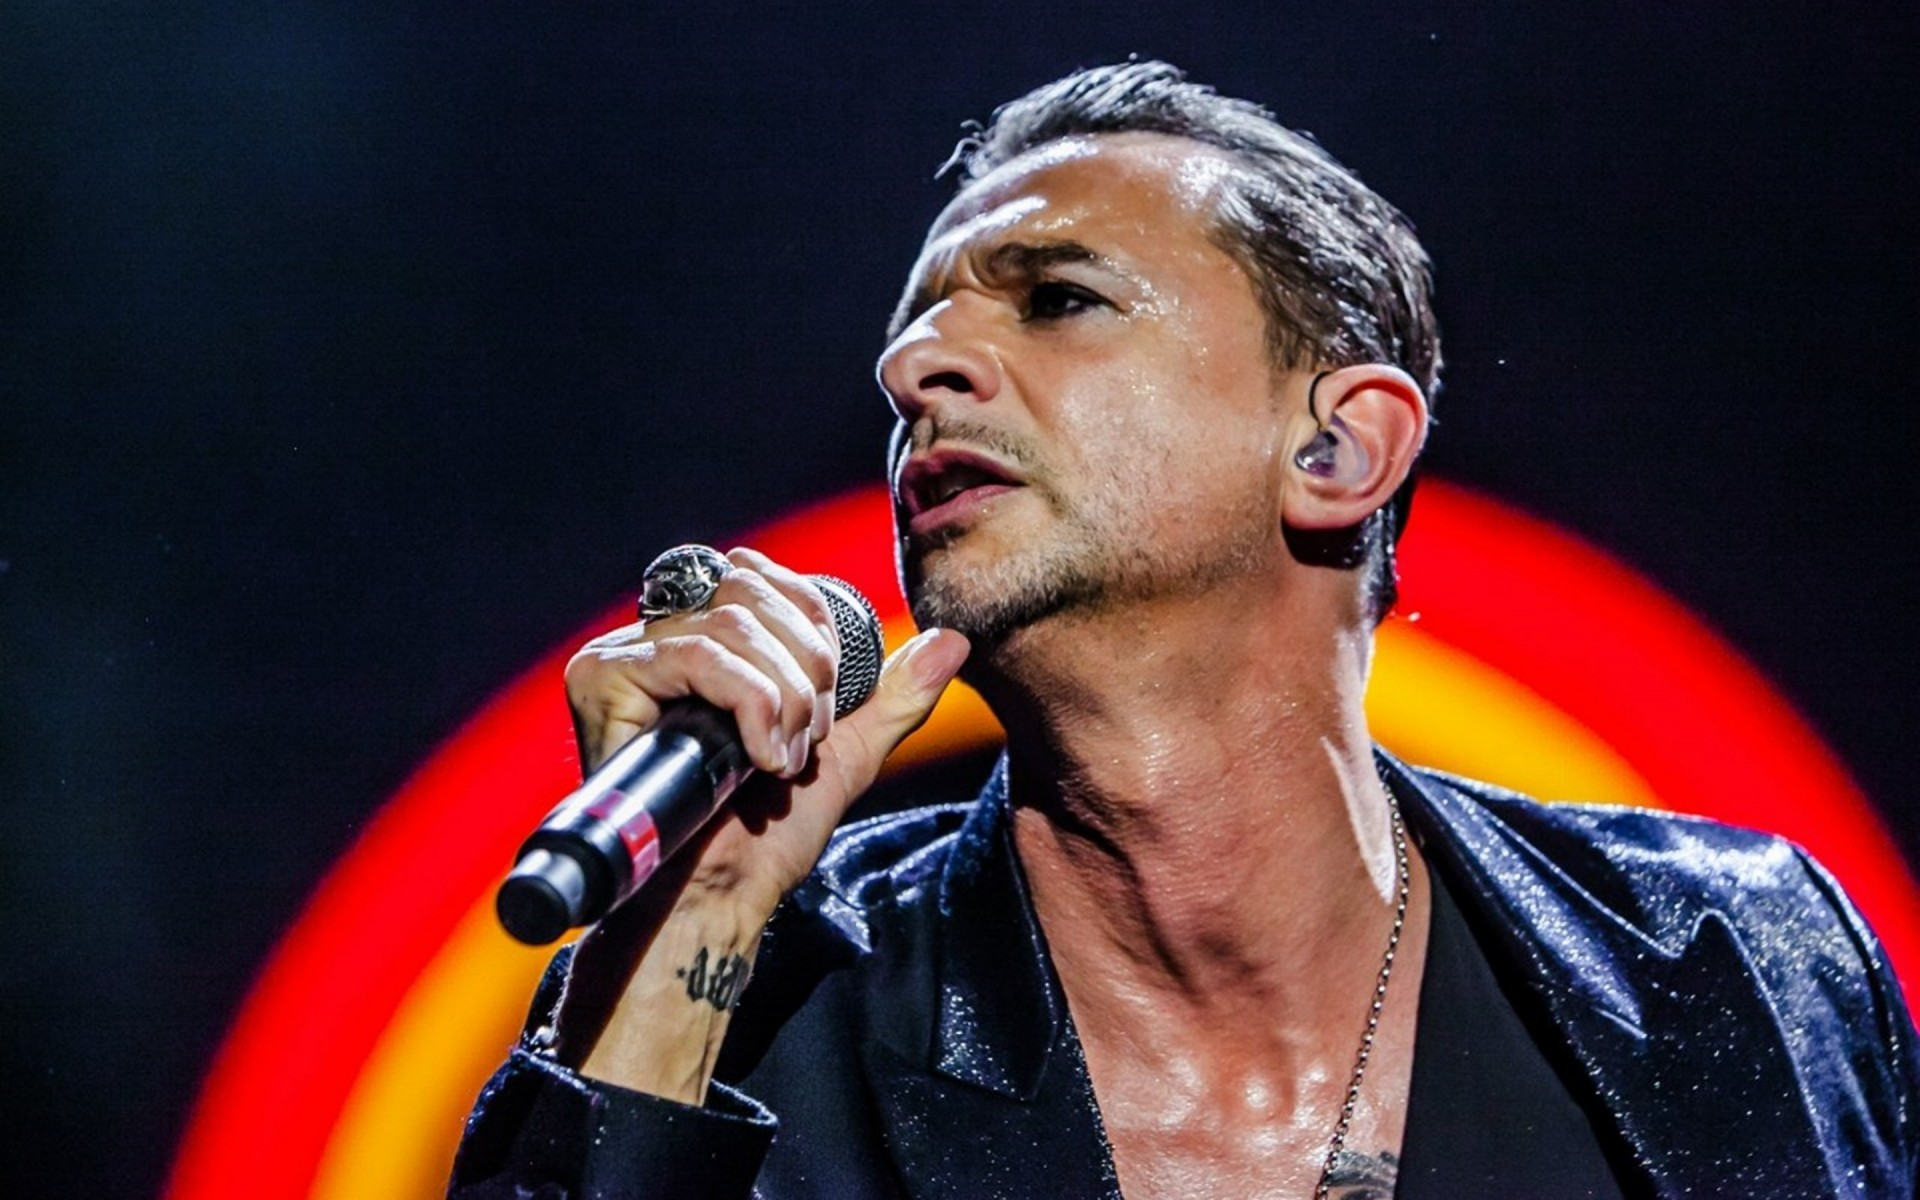 bands music performance concert singer musician festival one stadium microphone stage pop competition david gahan depeche mode